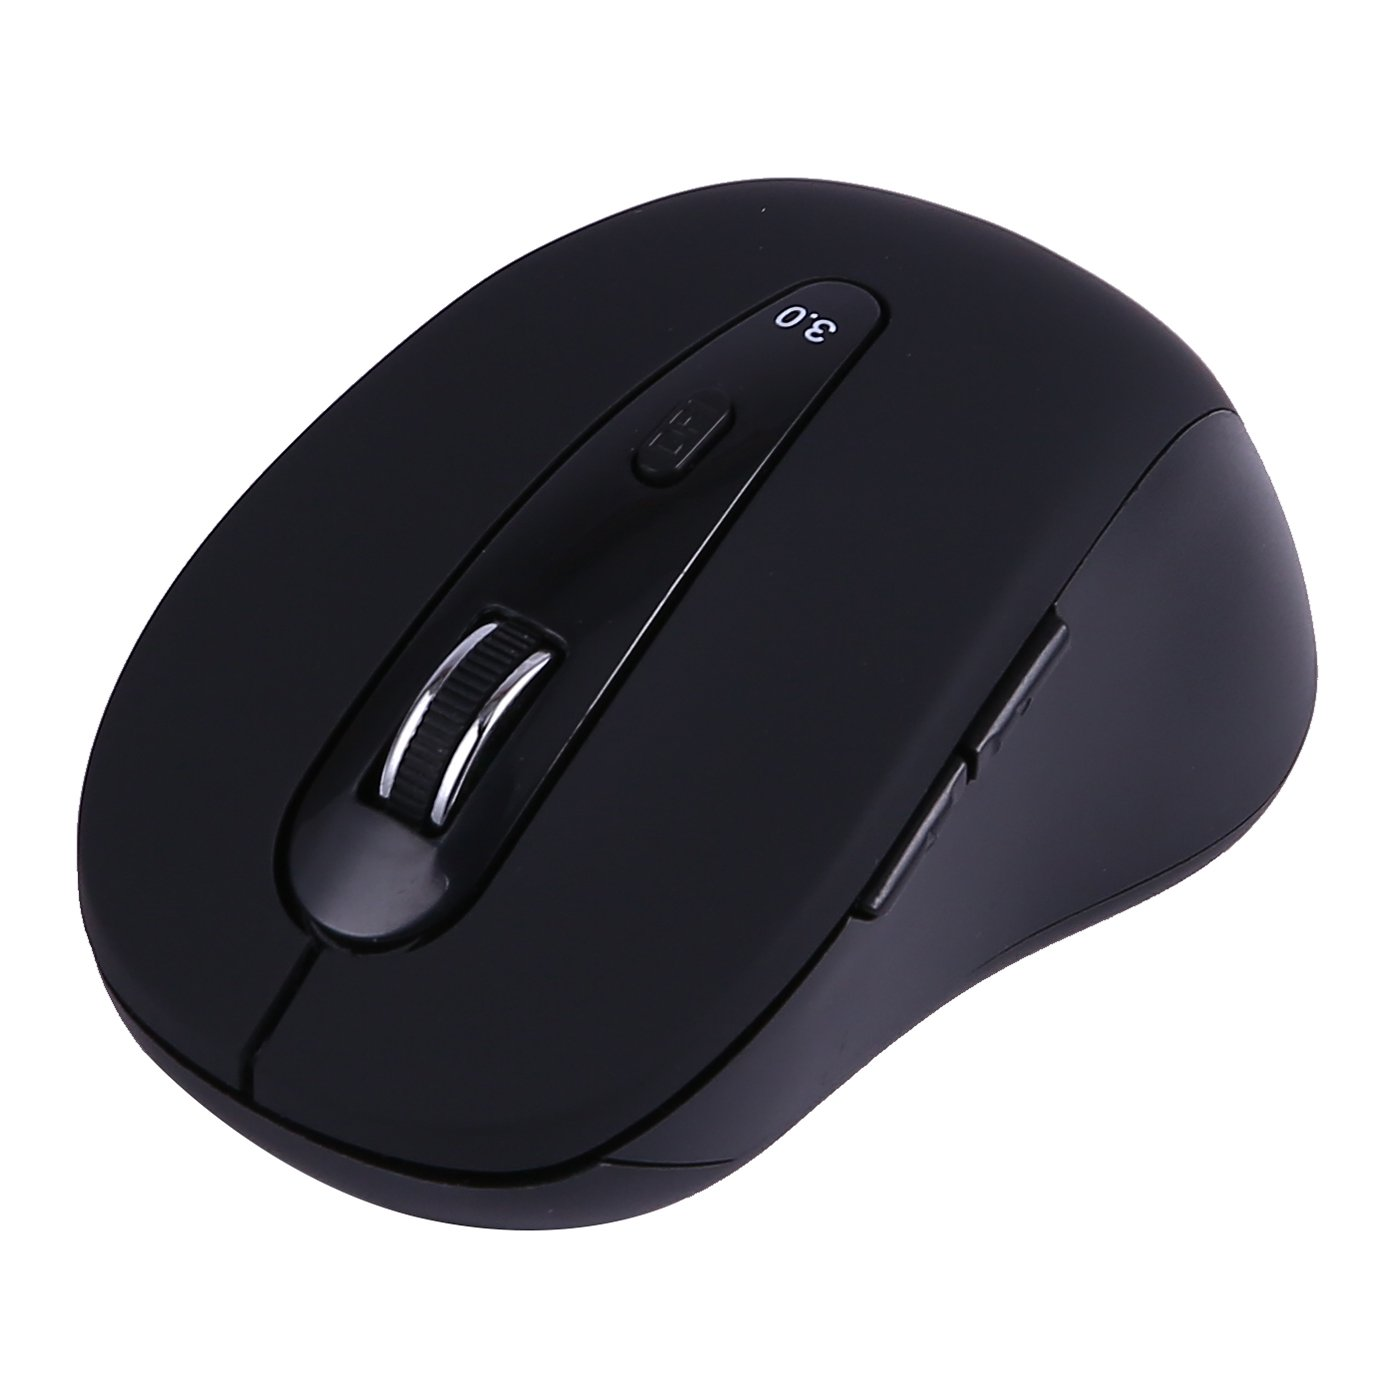 43e1f030cb7 Amazon.com: Bluetooth Wireless Mouse with Adjustable DPI Ergonomic Portable  Optical Mouse for PC Mac and ChromeBook: Computers & Accessories